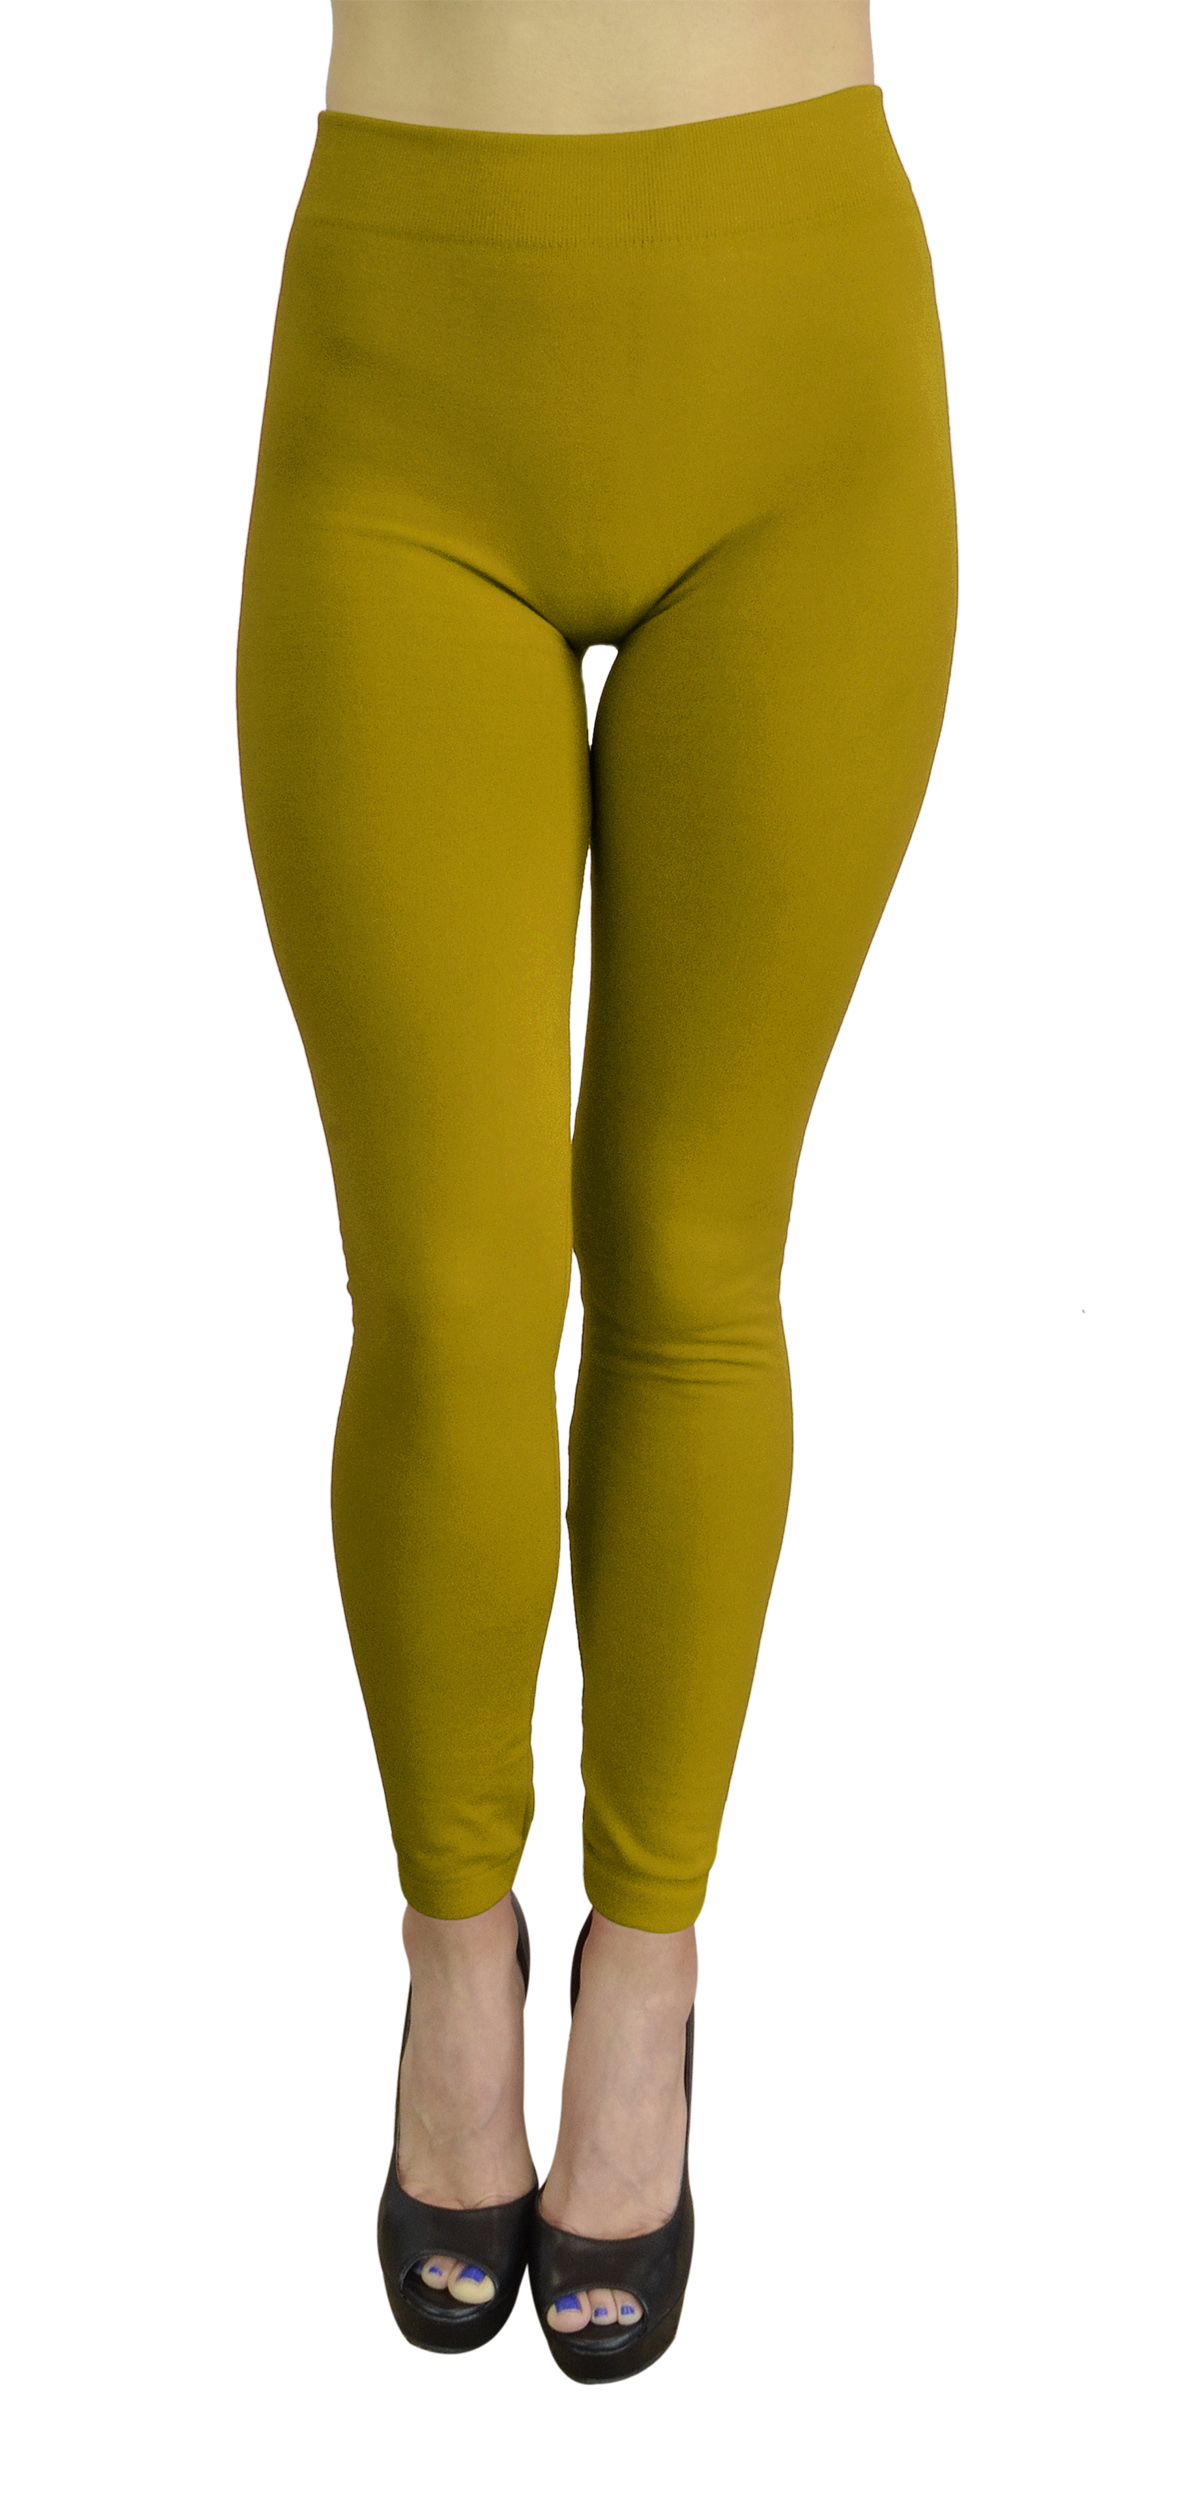 Belle Donne - Women's Fleece Lined Leggings (One Size) - Mustard